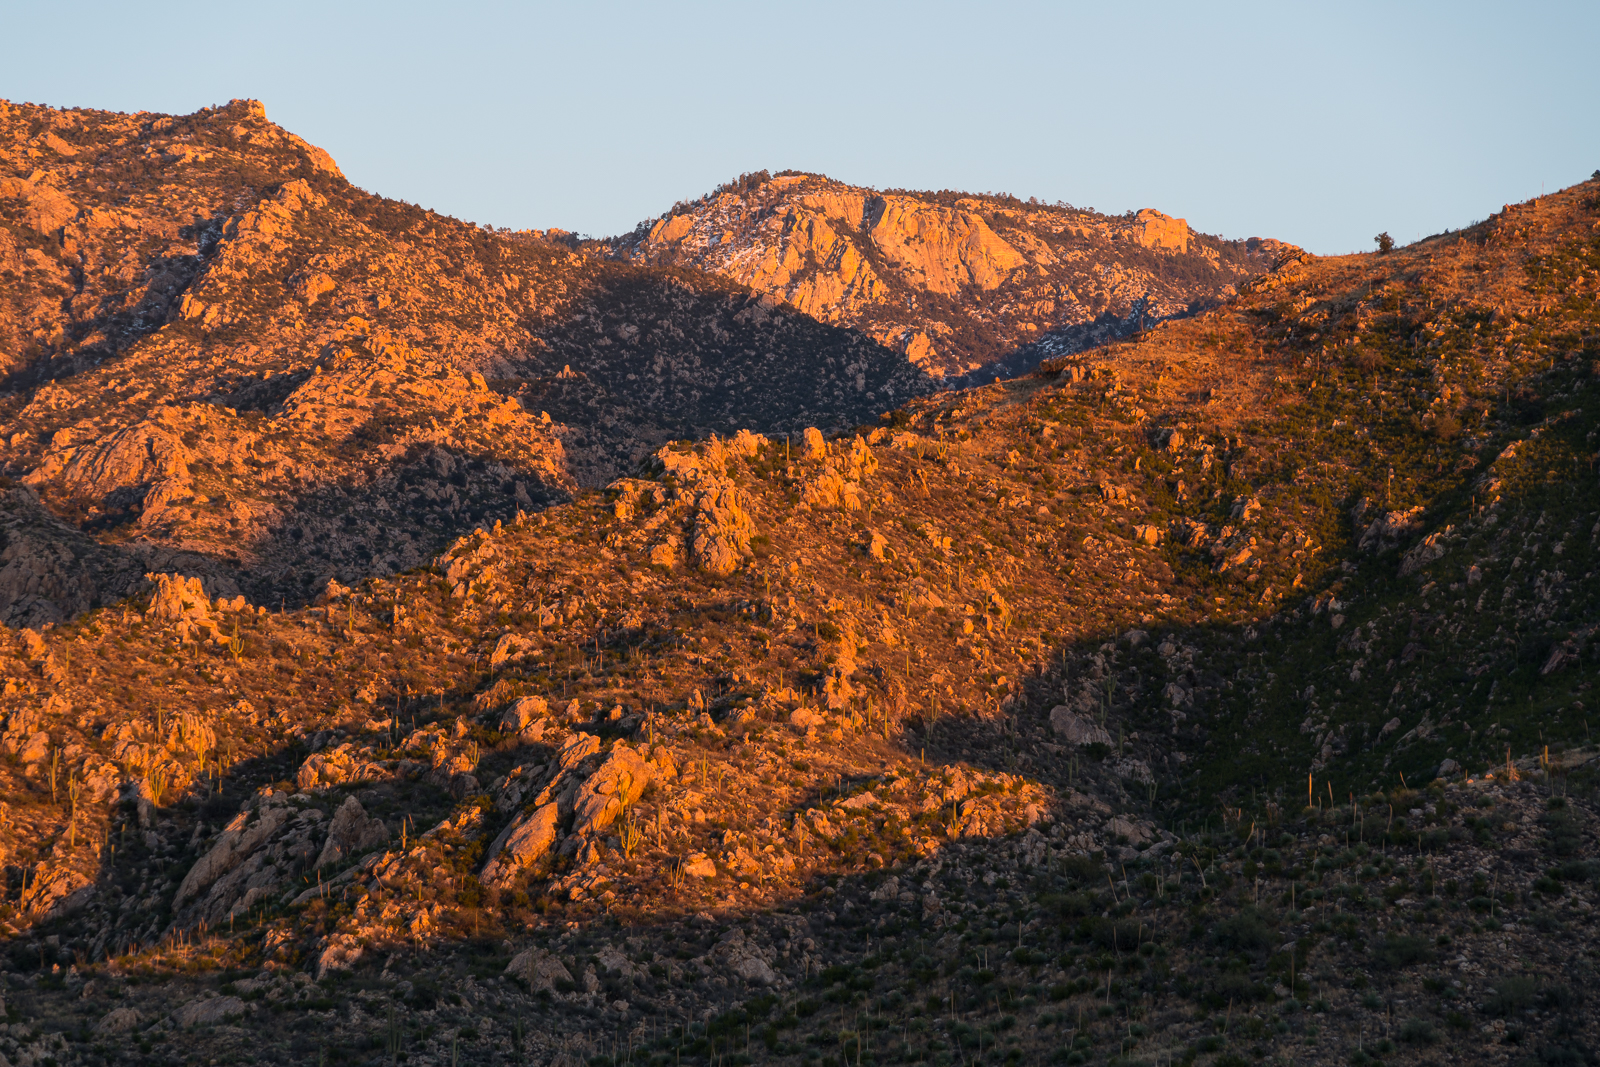 Sunset light in Catalina State Park. January 2016.